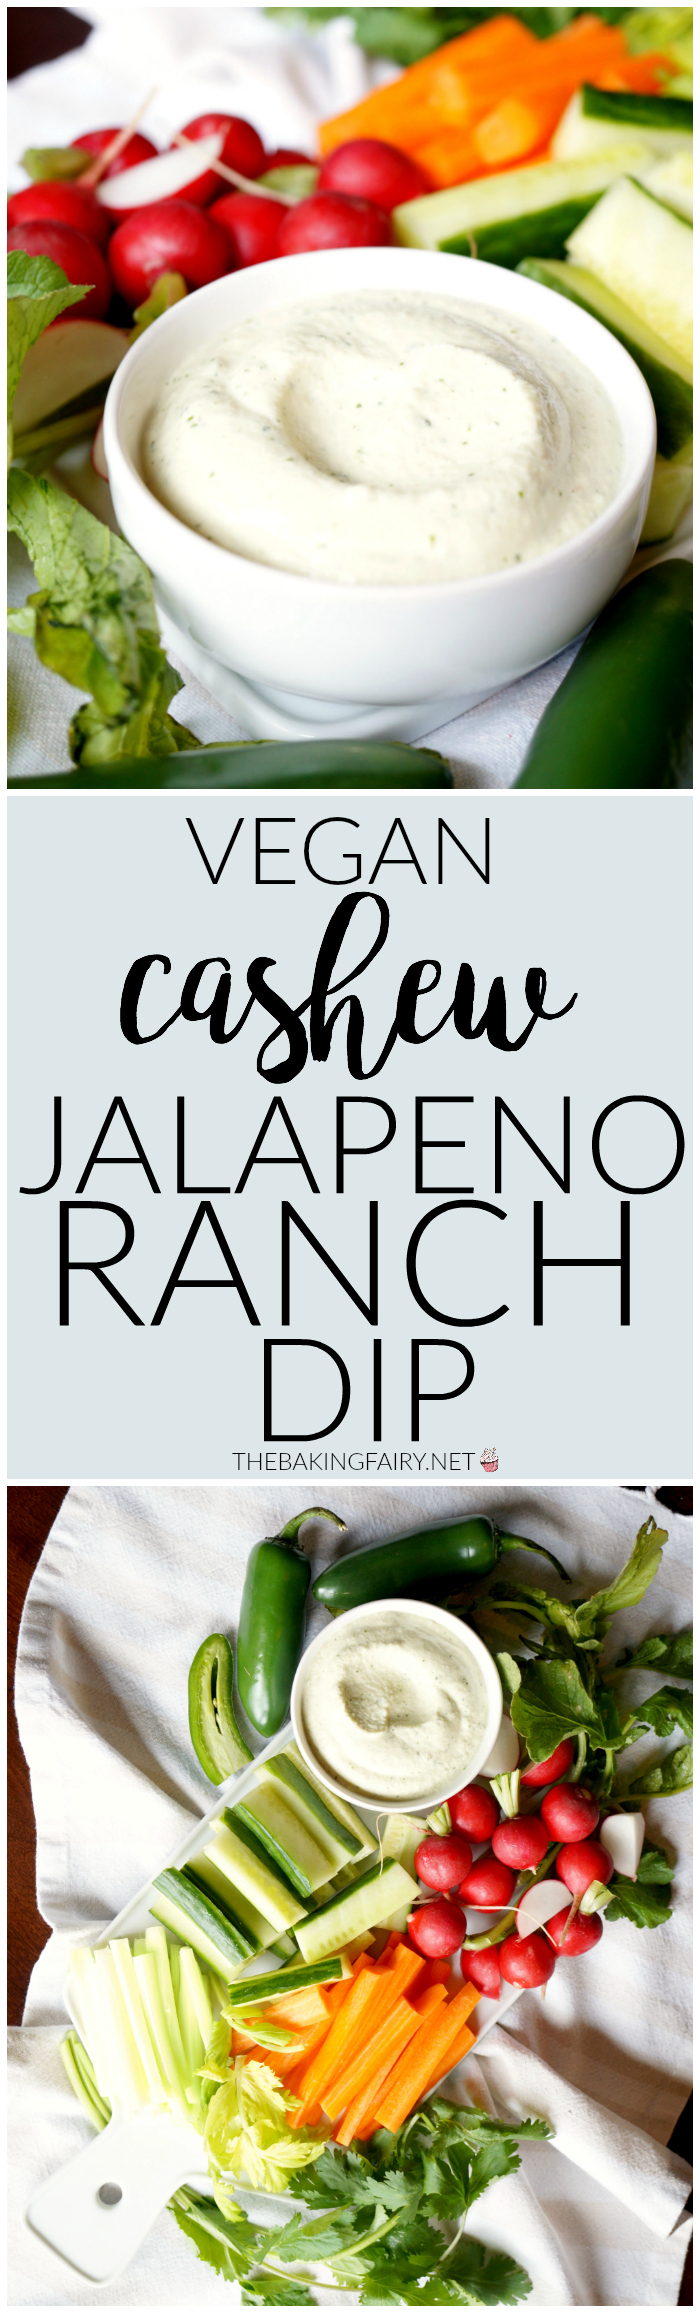 vegan cashew jalapeno ranch dip | The Baking Fairy